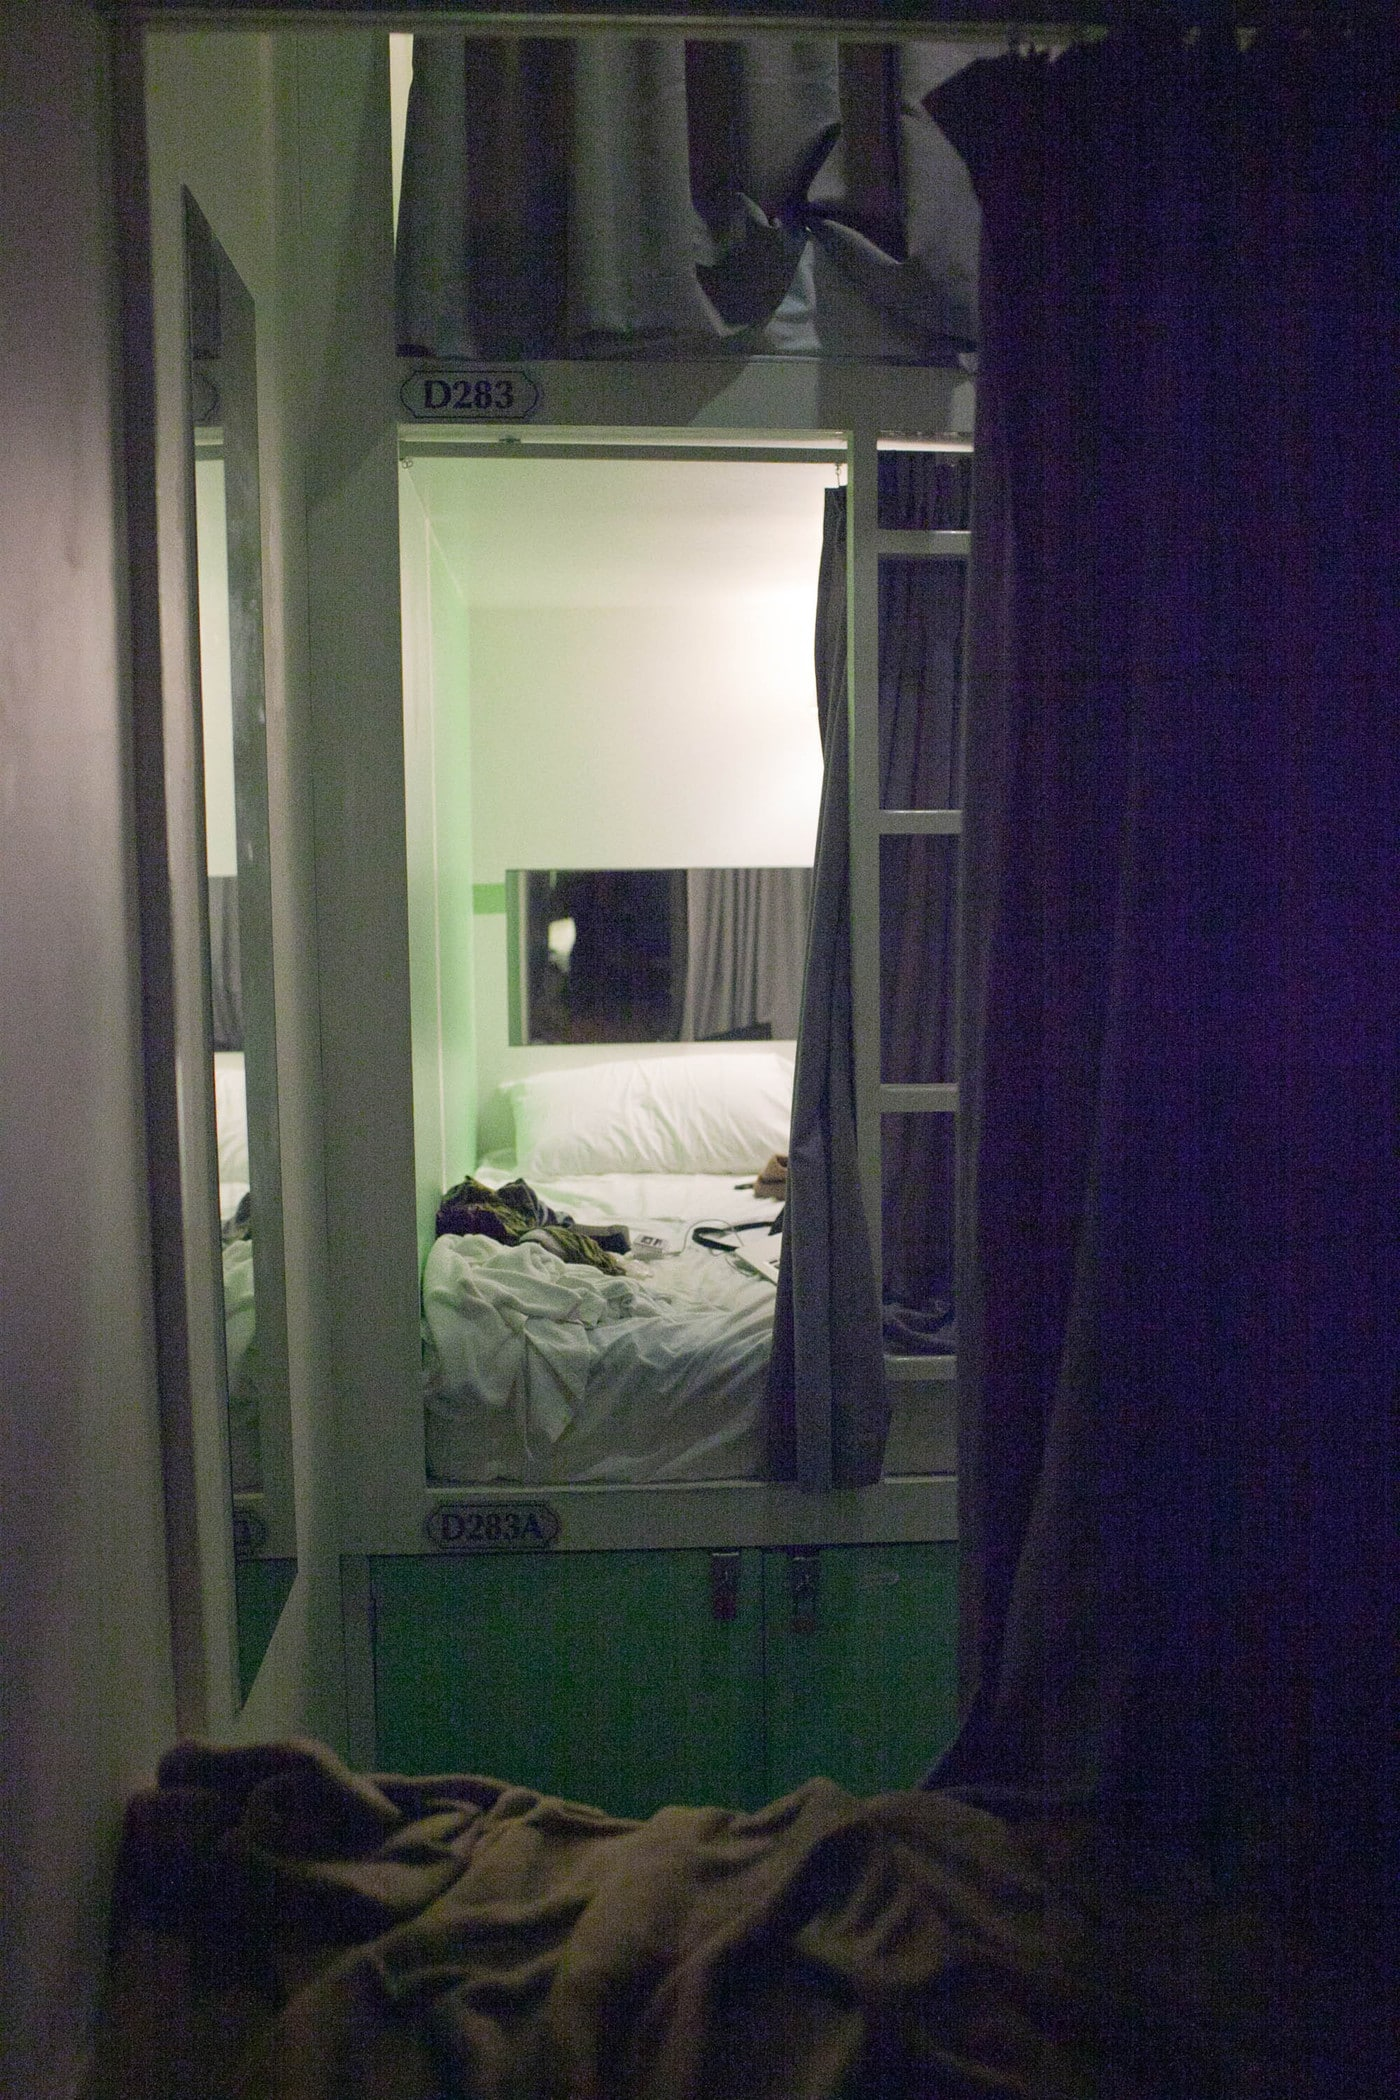 Fort Beds at Reggae Mansion in Kuala Lumpur, Malaysia